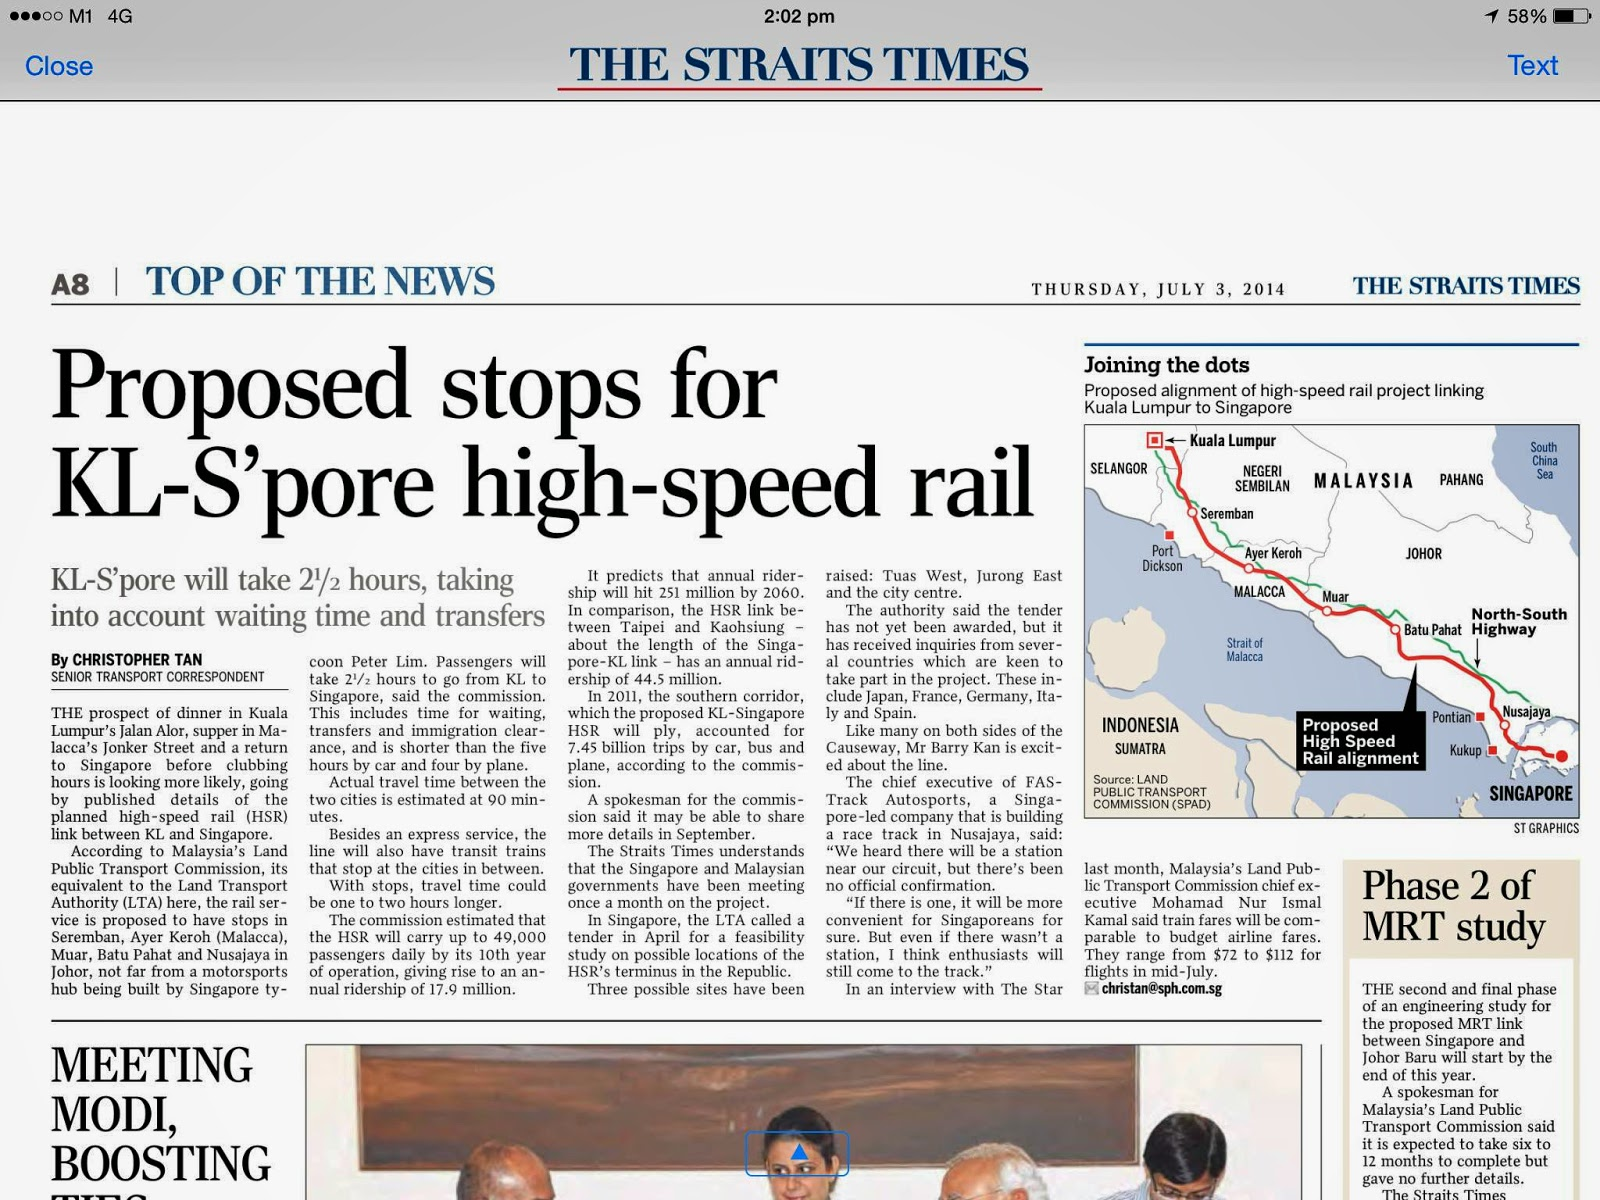 high speed train in malaysia A chinese consortium led by china railway corp will participate in bidding for a high-speed railroad linking singapore and malaysia in 2018, marking another step in china's ambitious strategy to export its high-speed railway technologies to southeast asia.